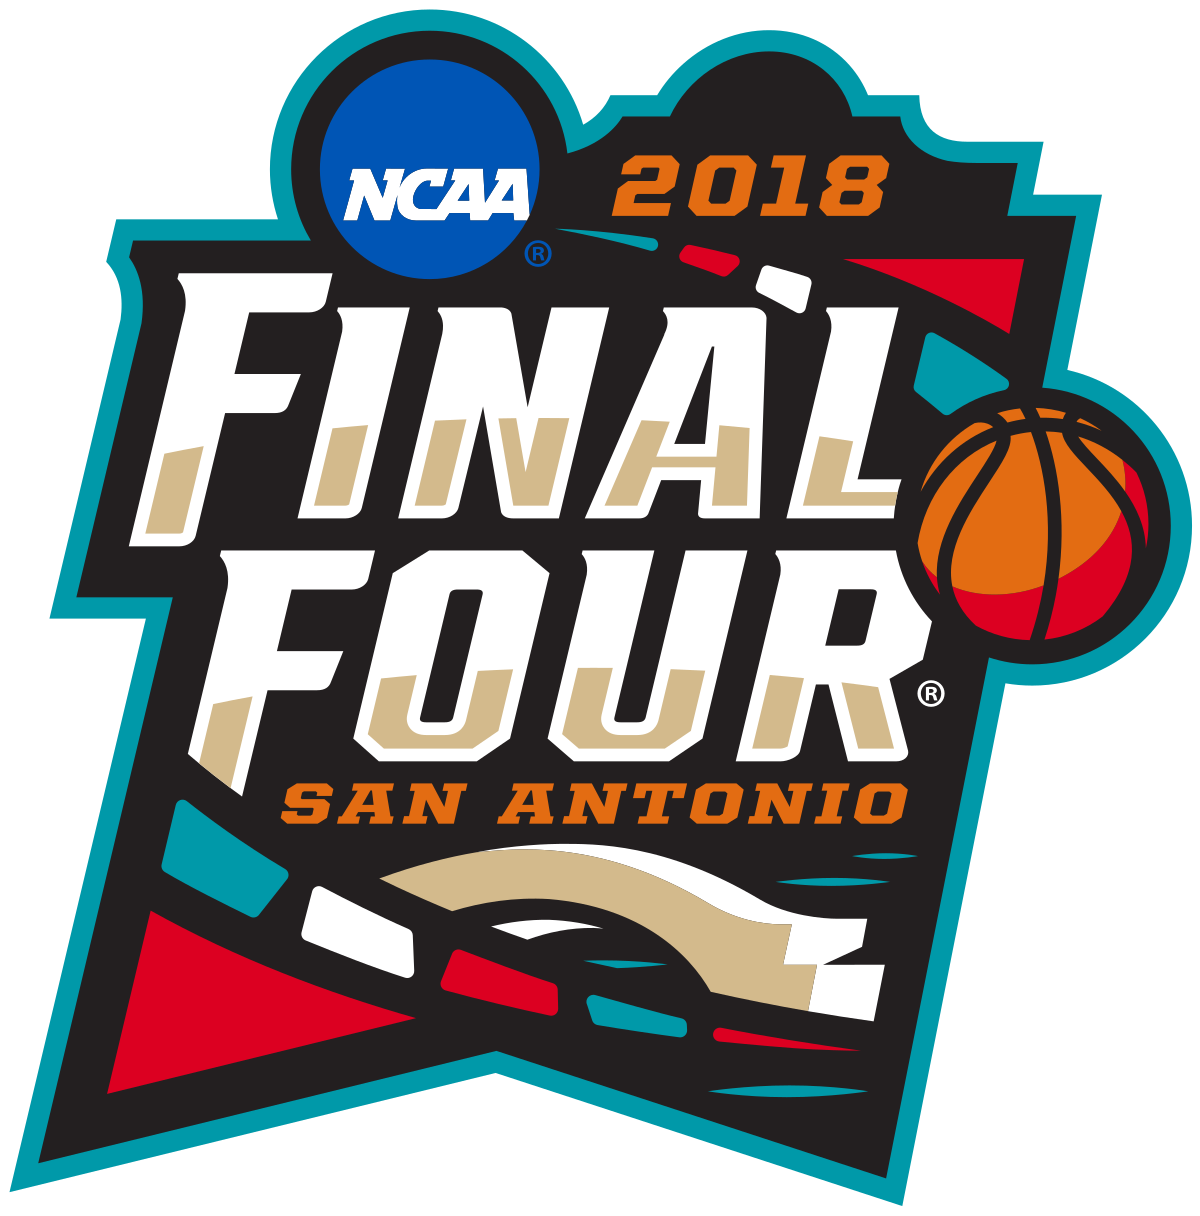 Basketball march madness clipart jpg freeuse Pre-Playoff NCAA March Madness Bracket Prediction – The Petroc jpg freeuse